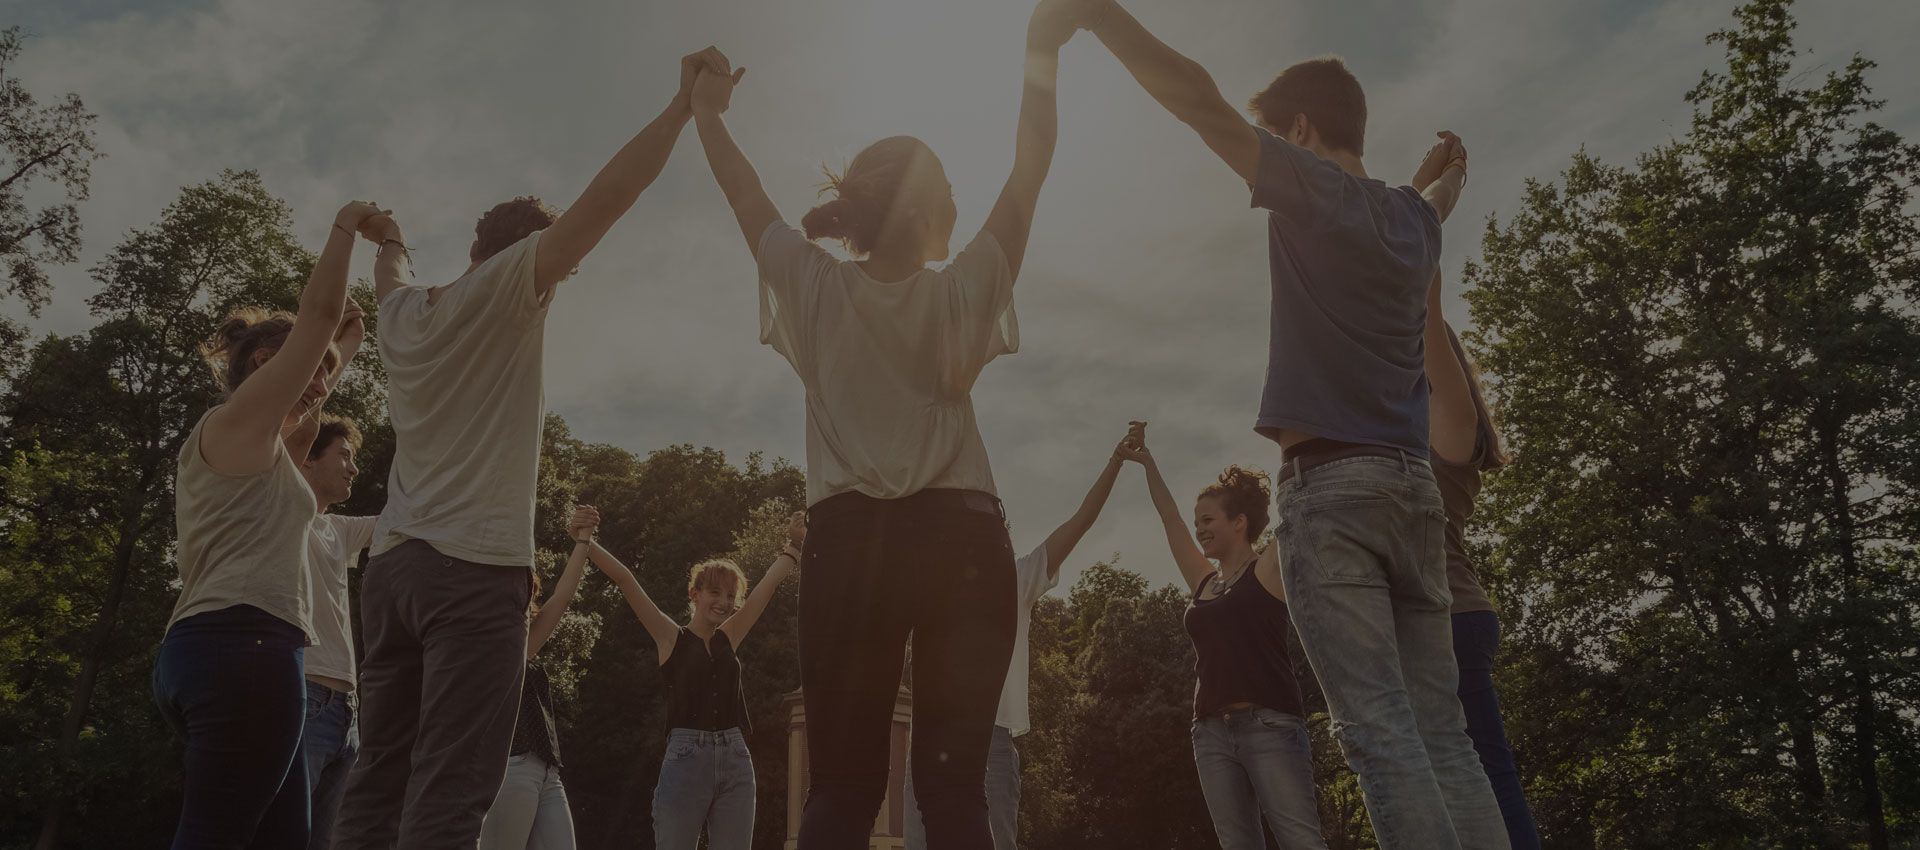 Groups holding hands in the air for Alpha Center Psychological Services Grand Junction